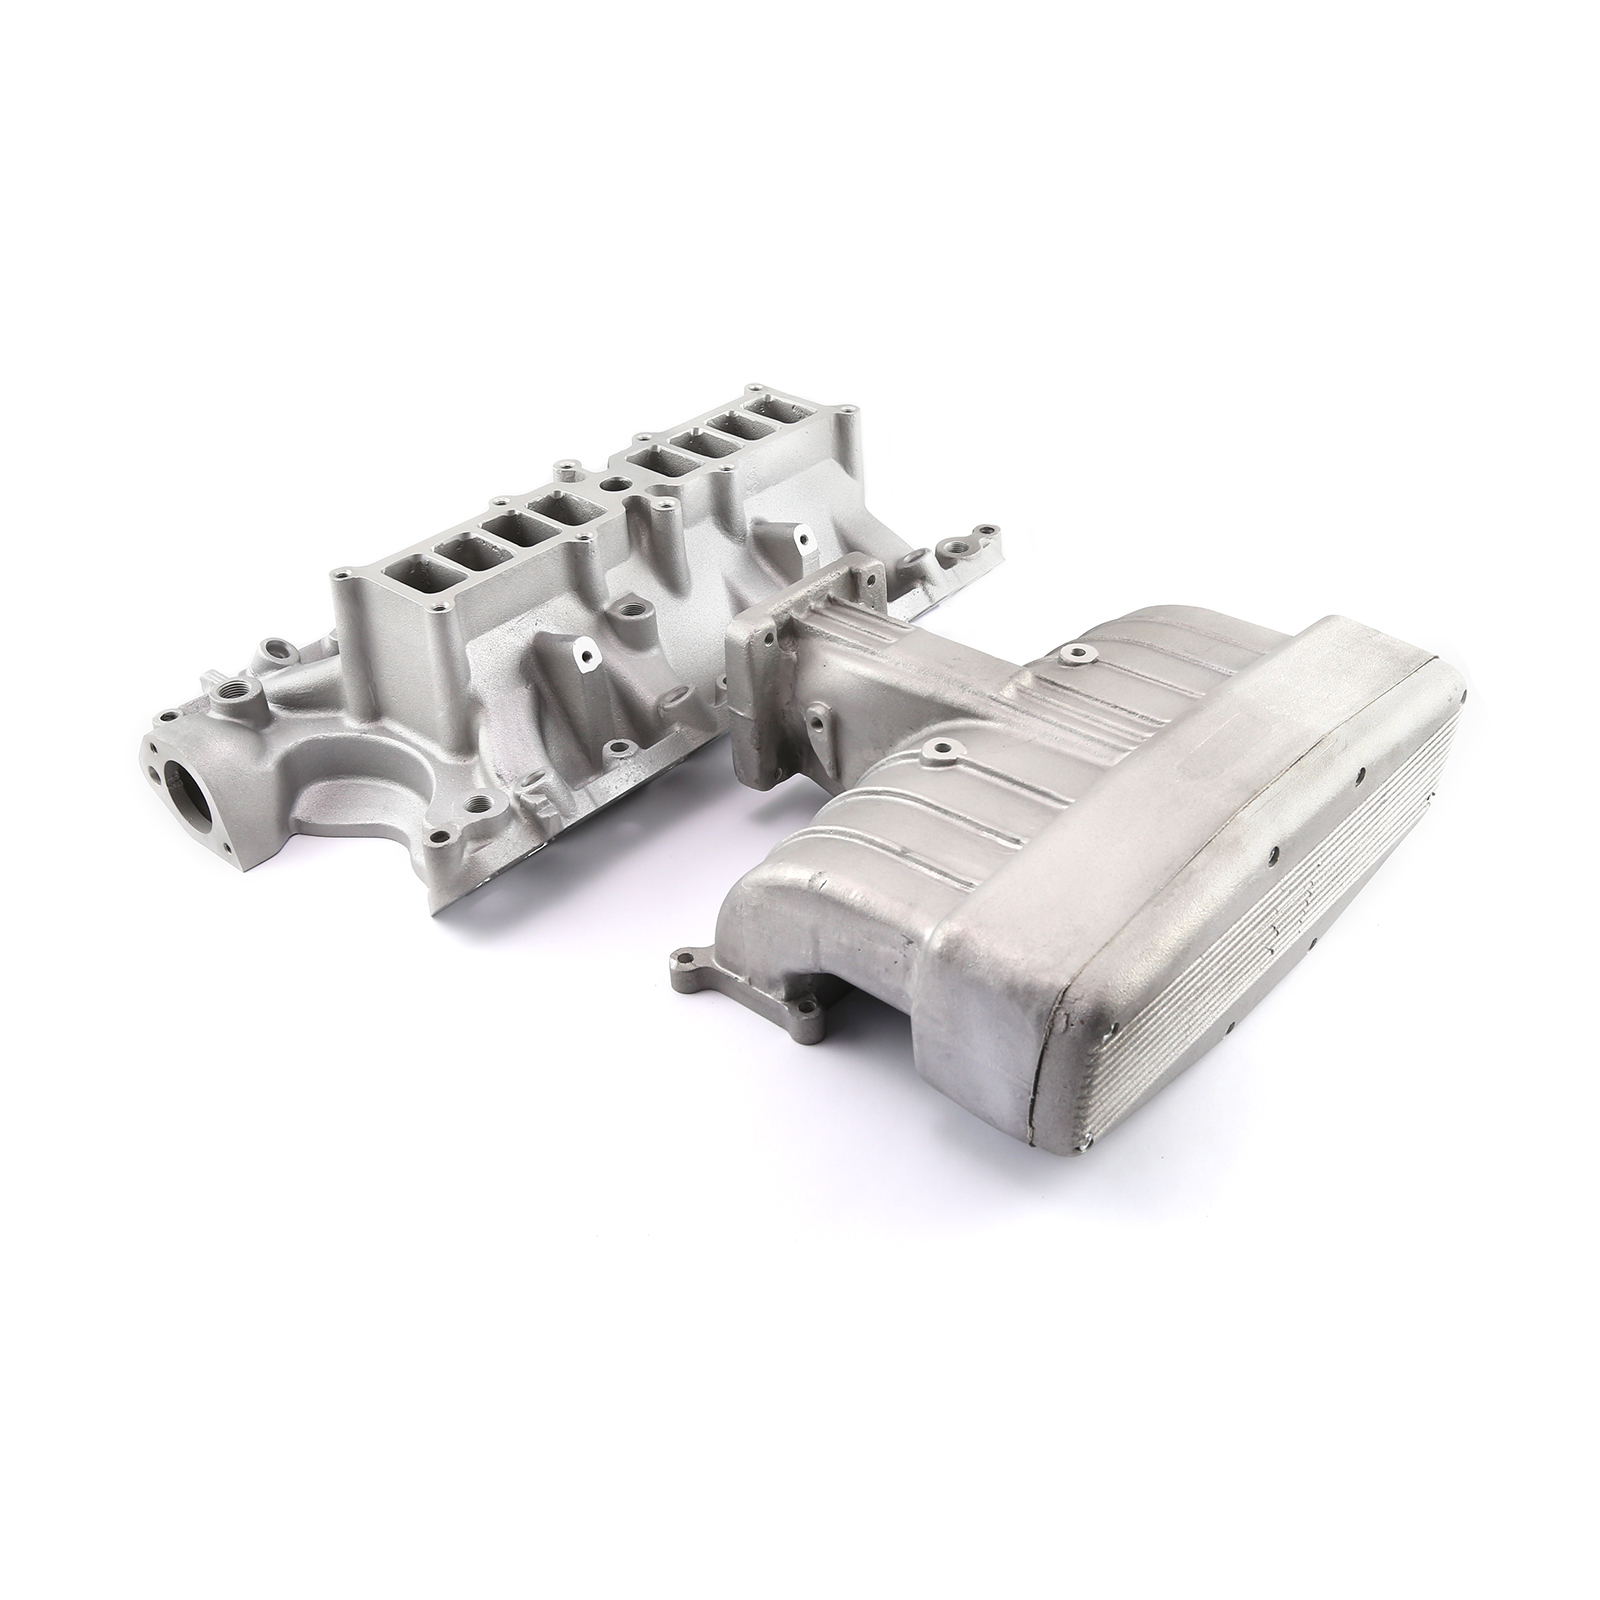 Ford 5.8L 351w EFI 1986-93 Qualifier Upper and Lower Intake Manifold Kit Satin